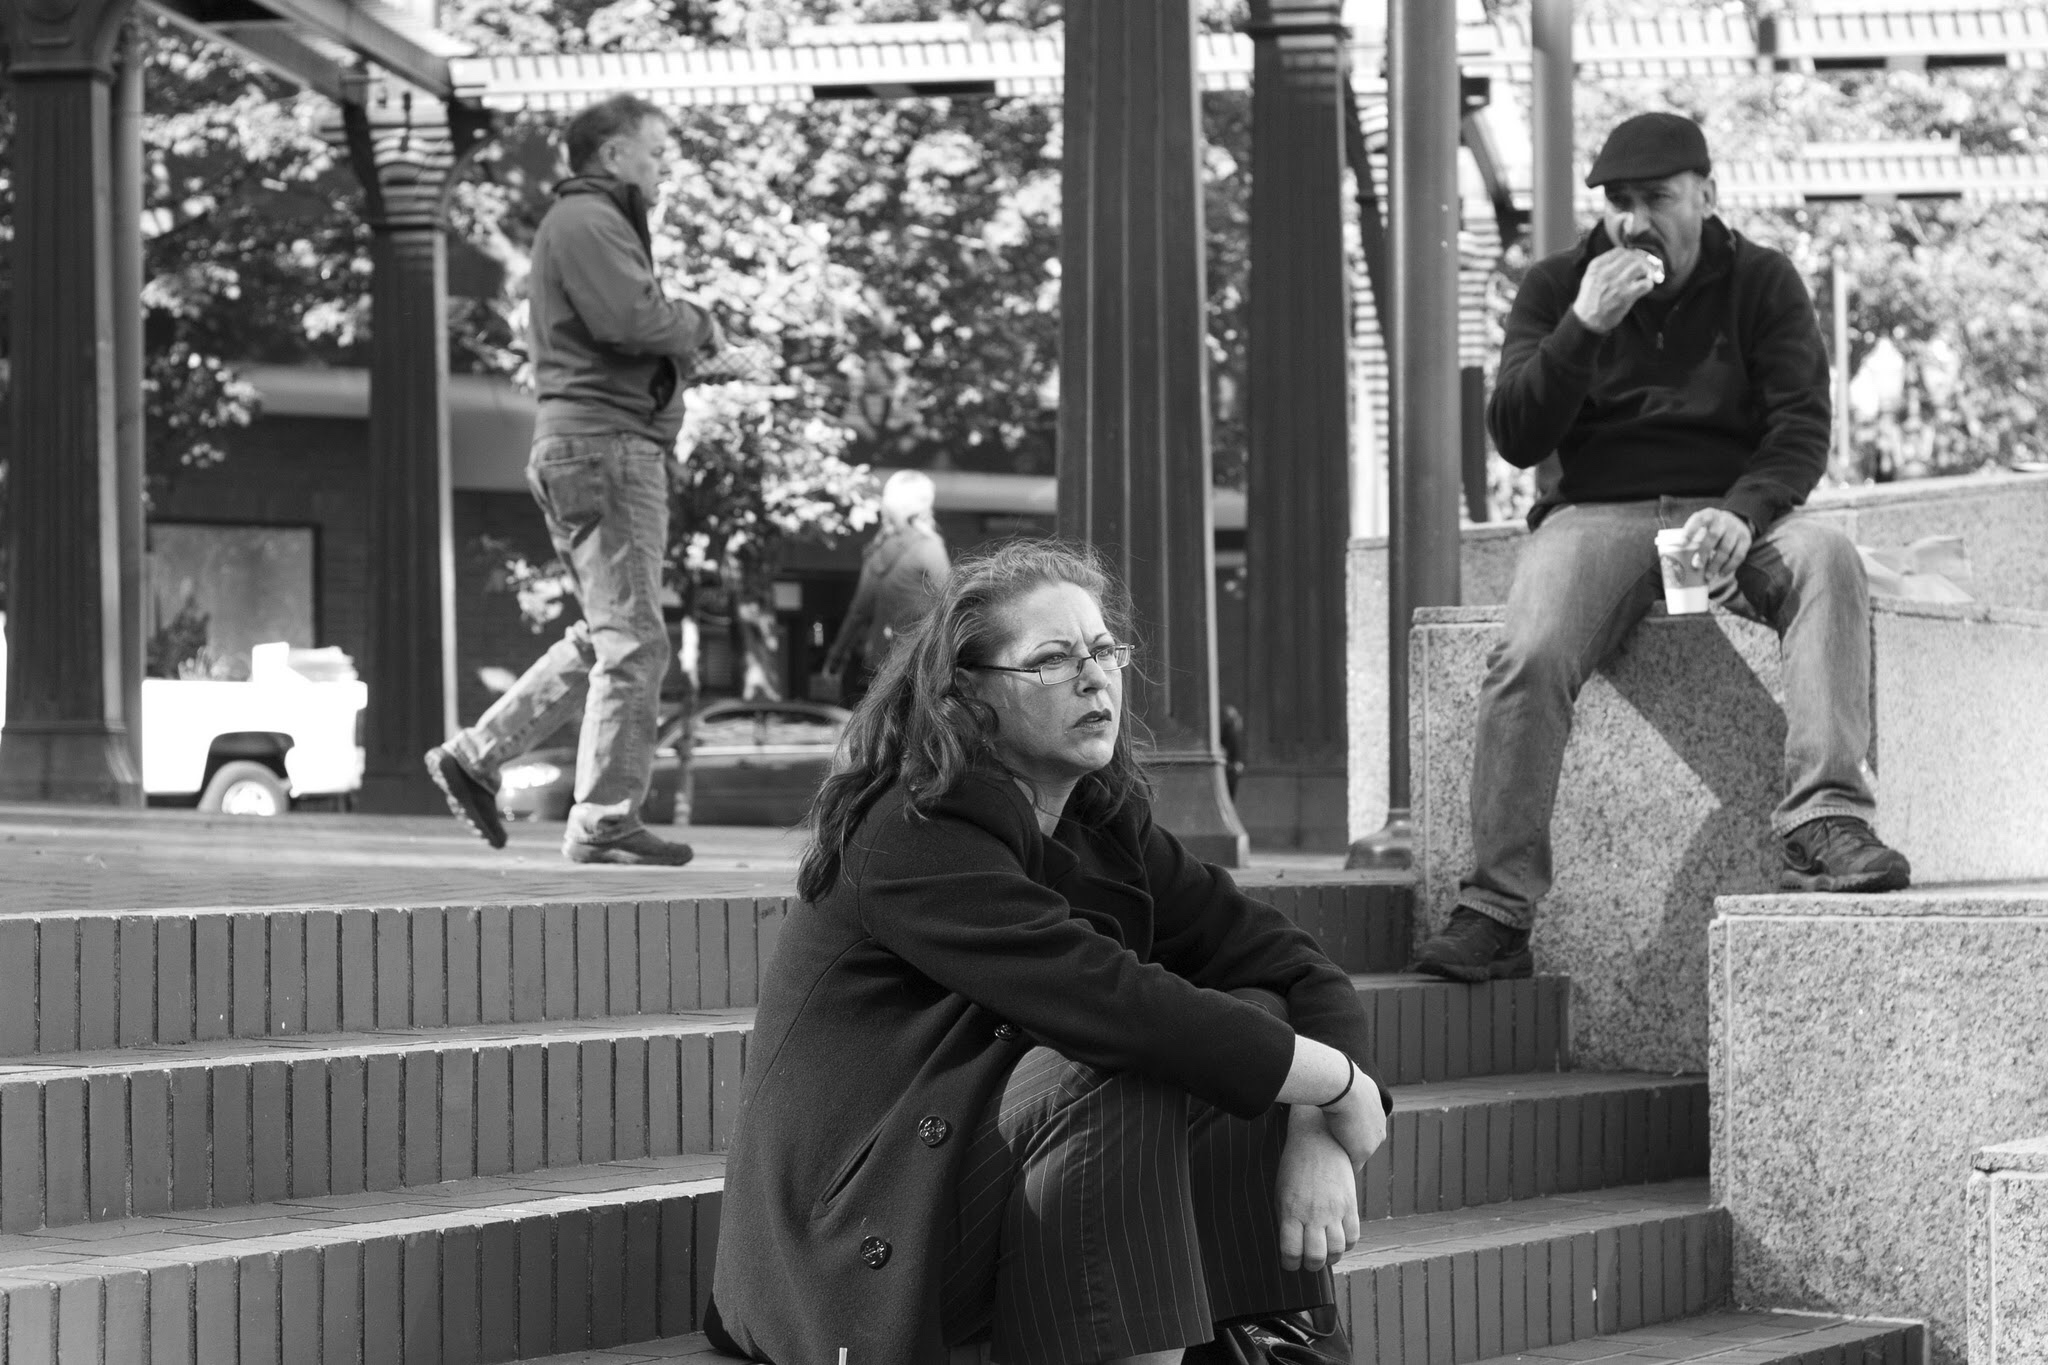 Lost Lunch. Portland, Oregon. 2013